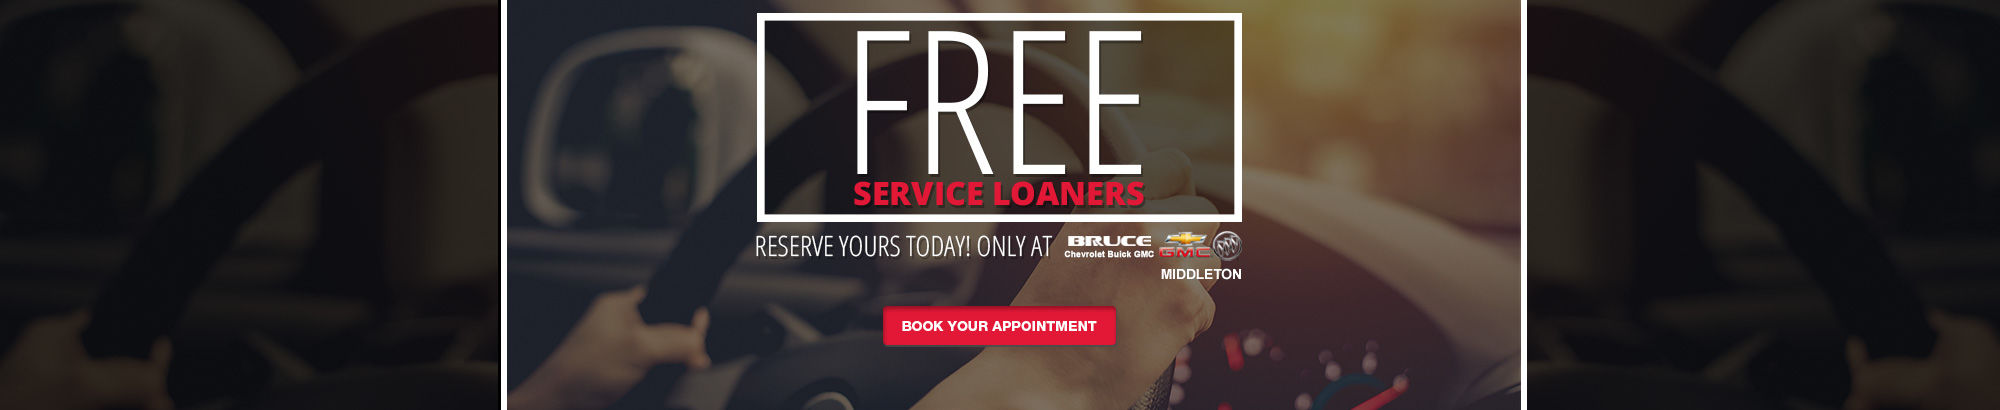 Free service loaners-Middleton